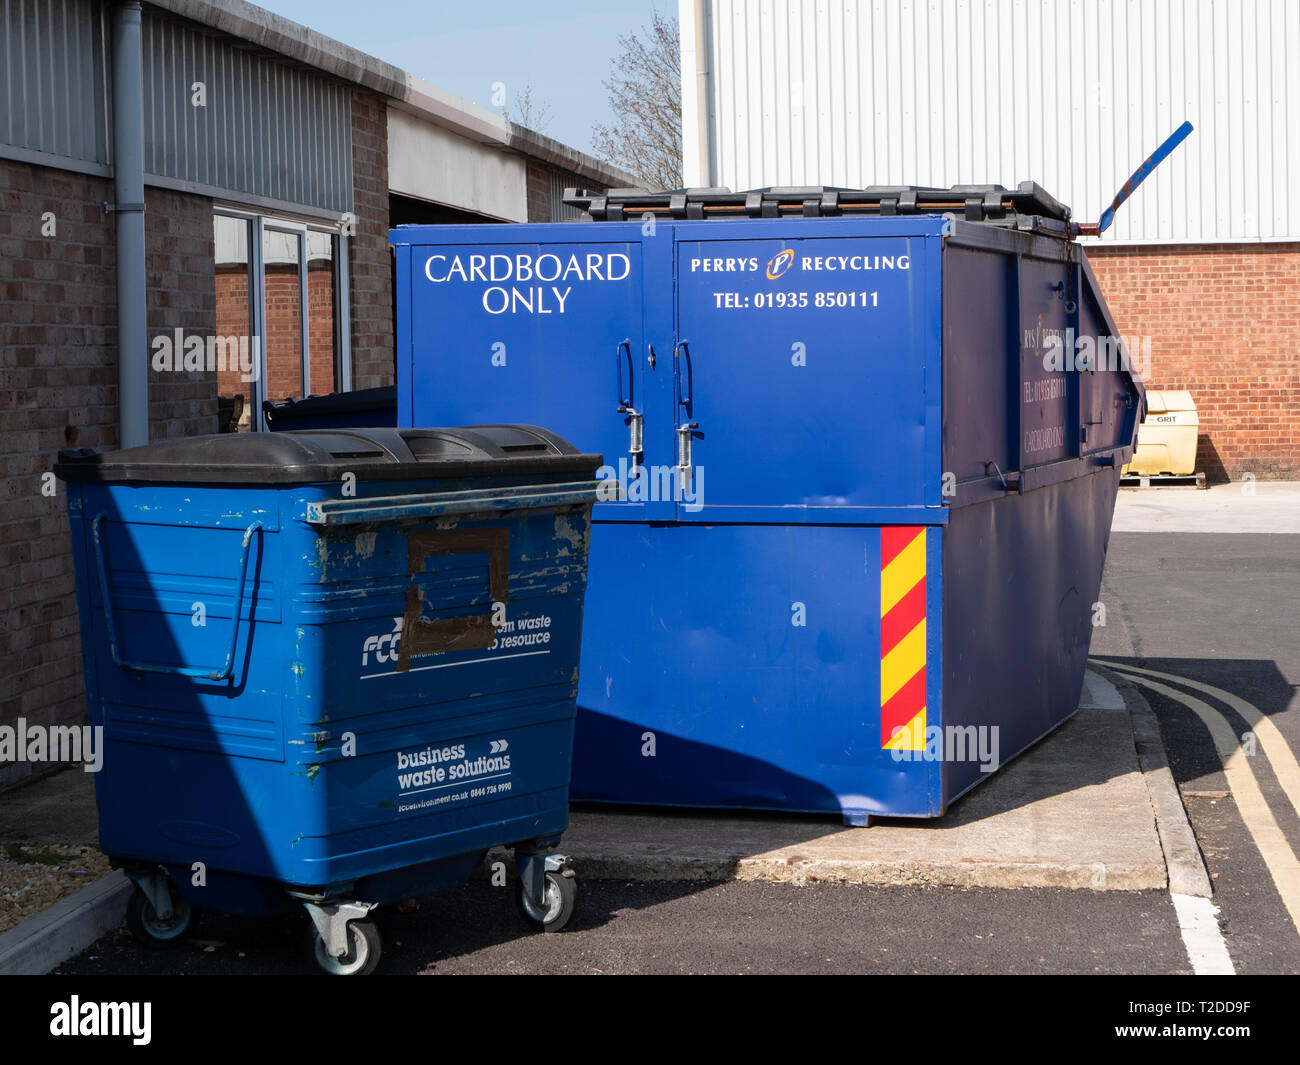 Recycling waste collection bins in Westbury, Wiltshire, UK. Stock Photo